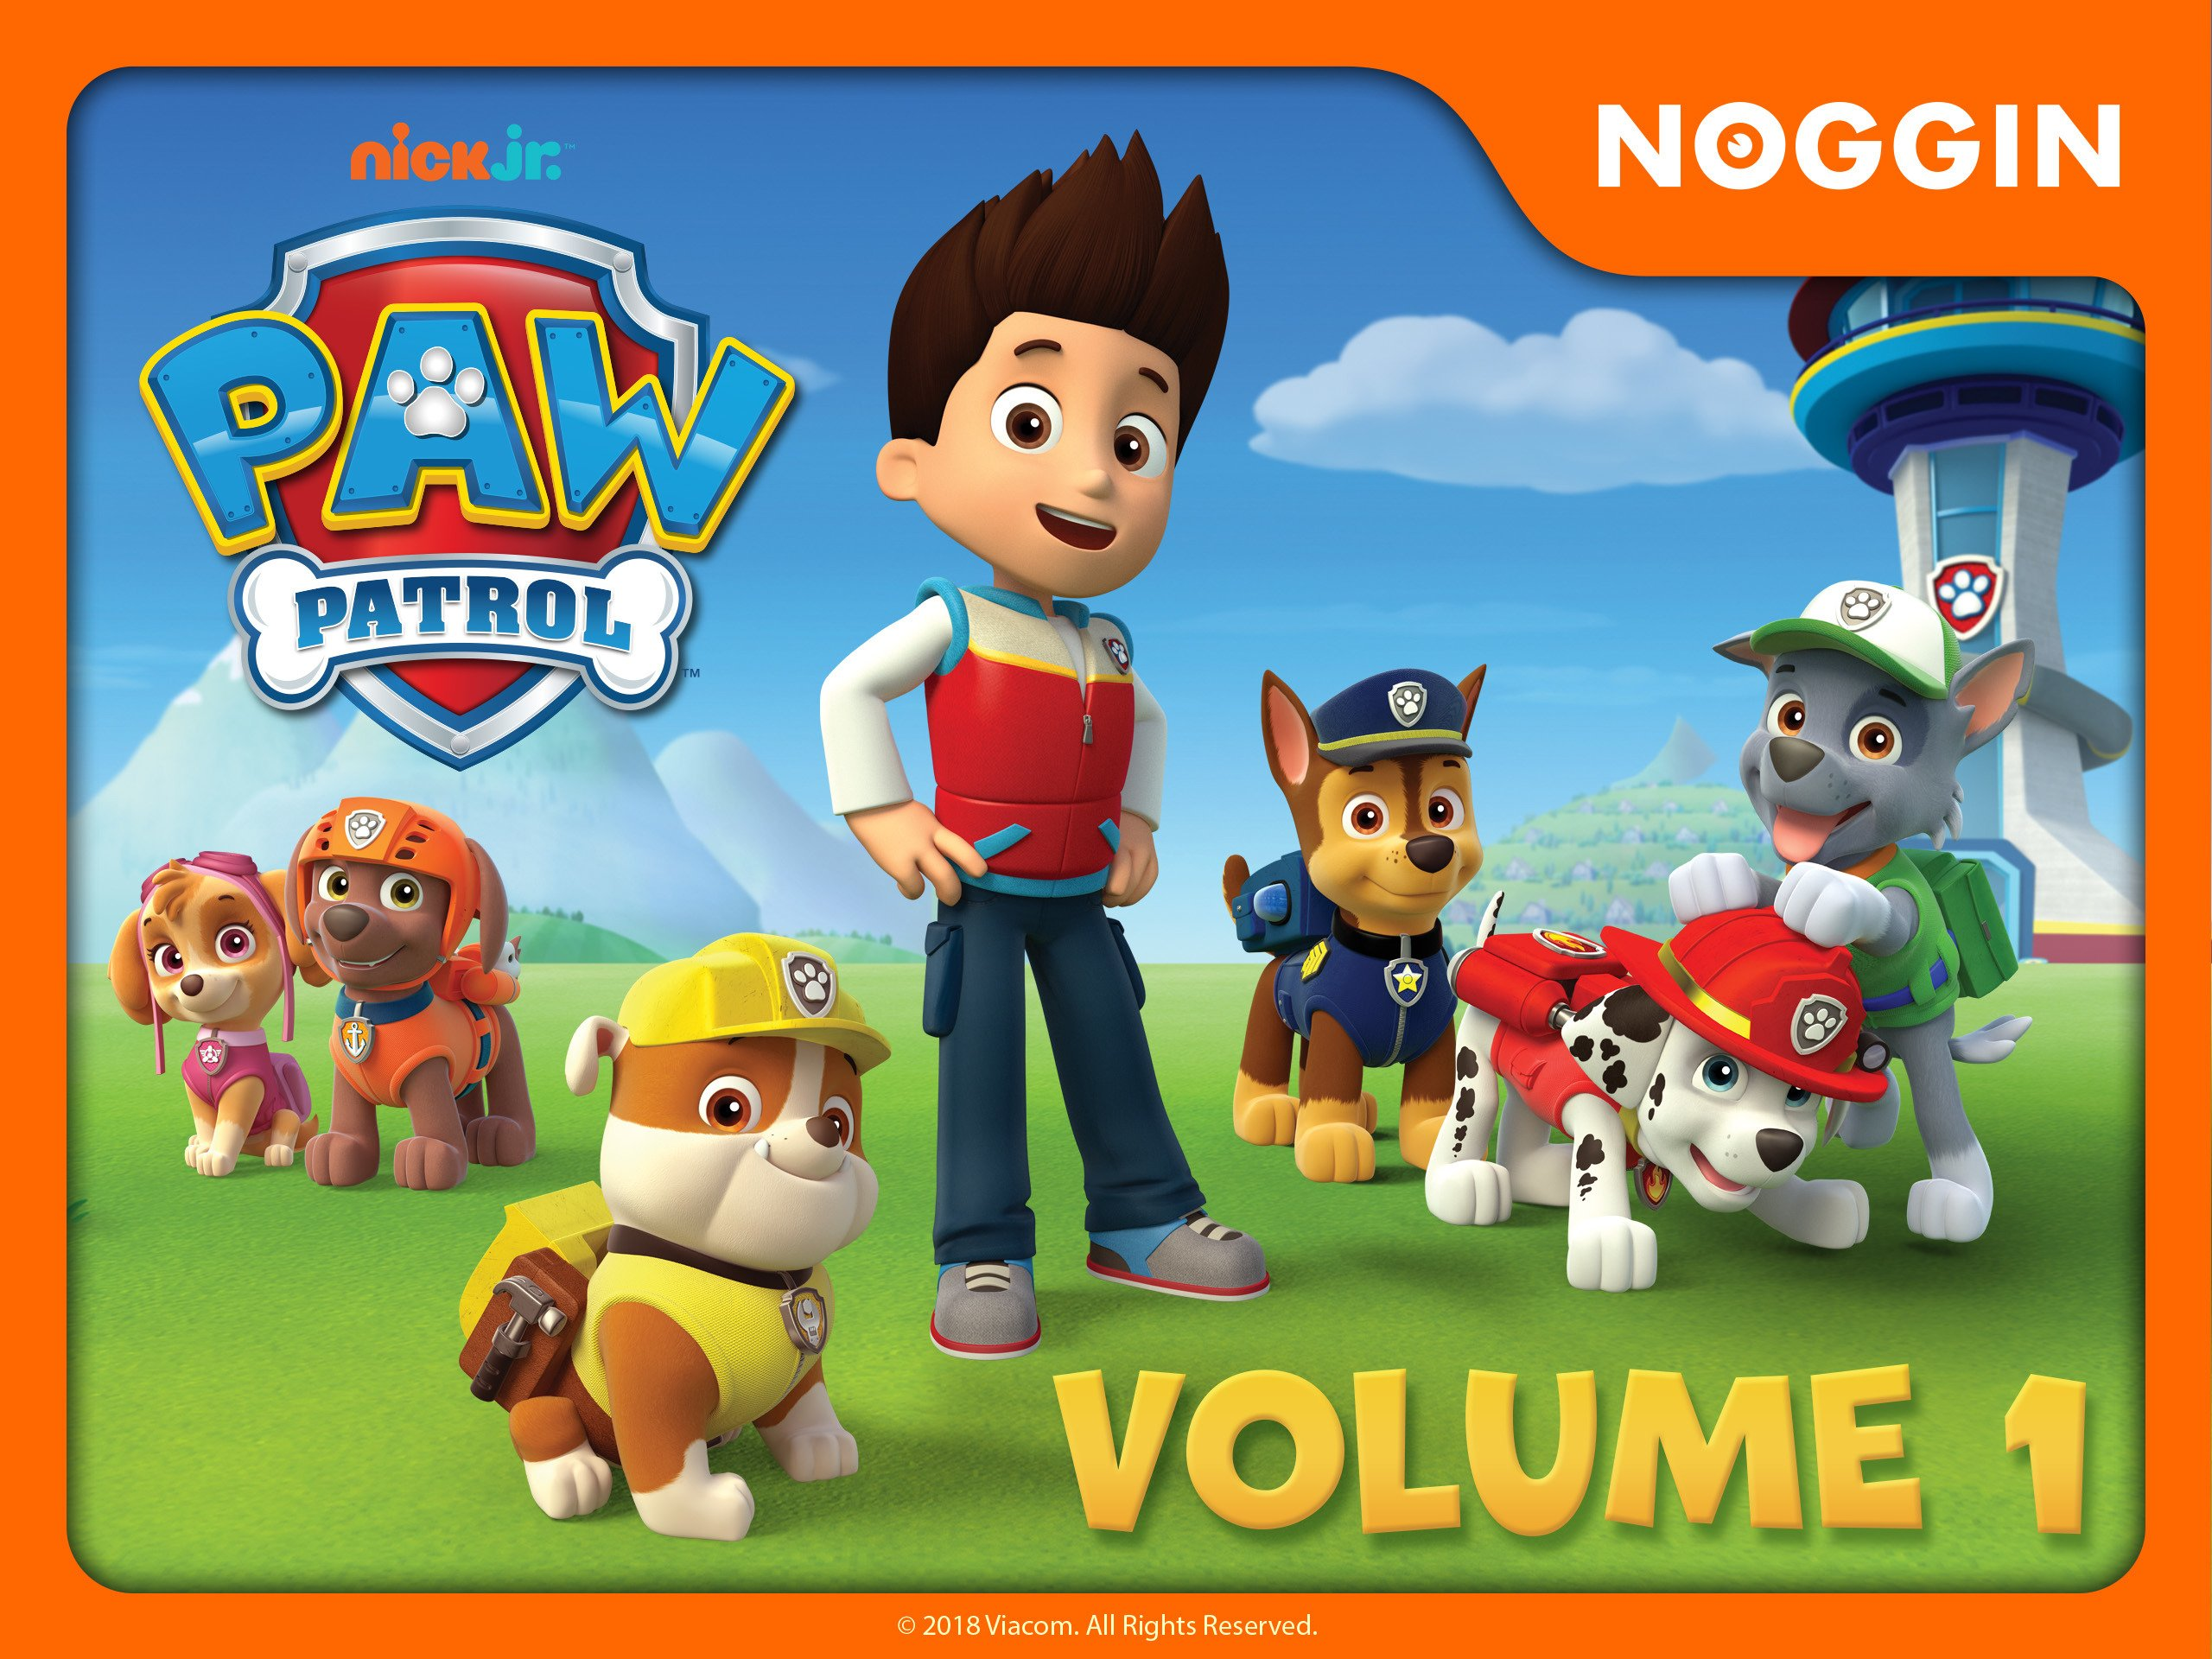 Amazon com: Watch PAW Patrol Volume 1 | Prime Video